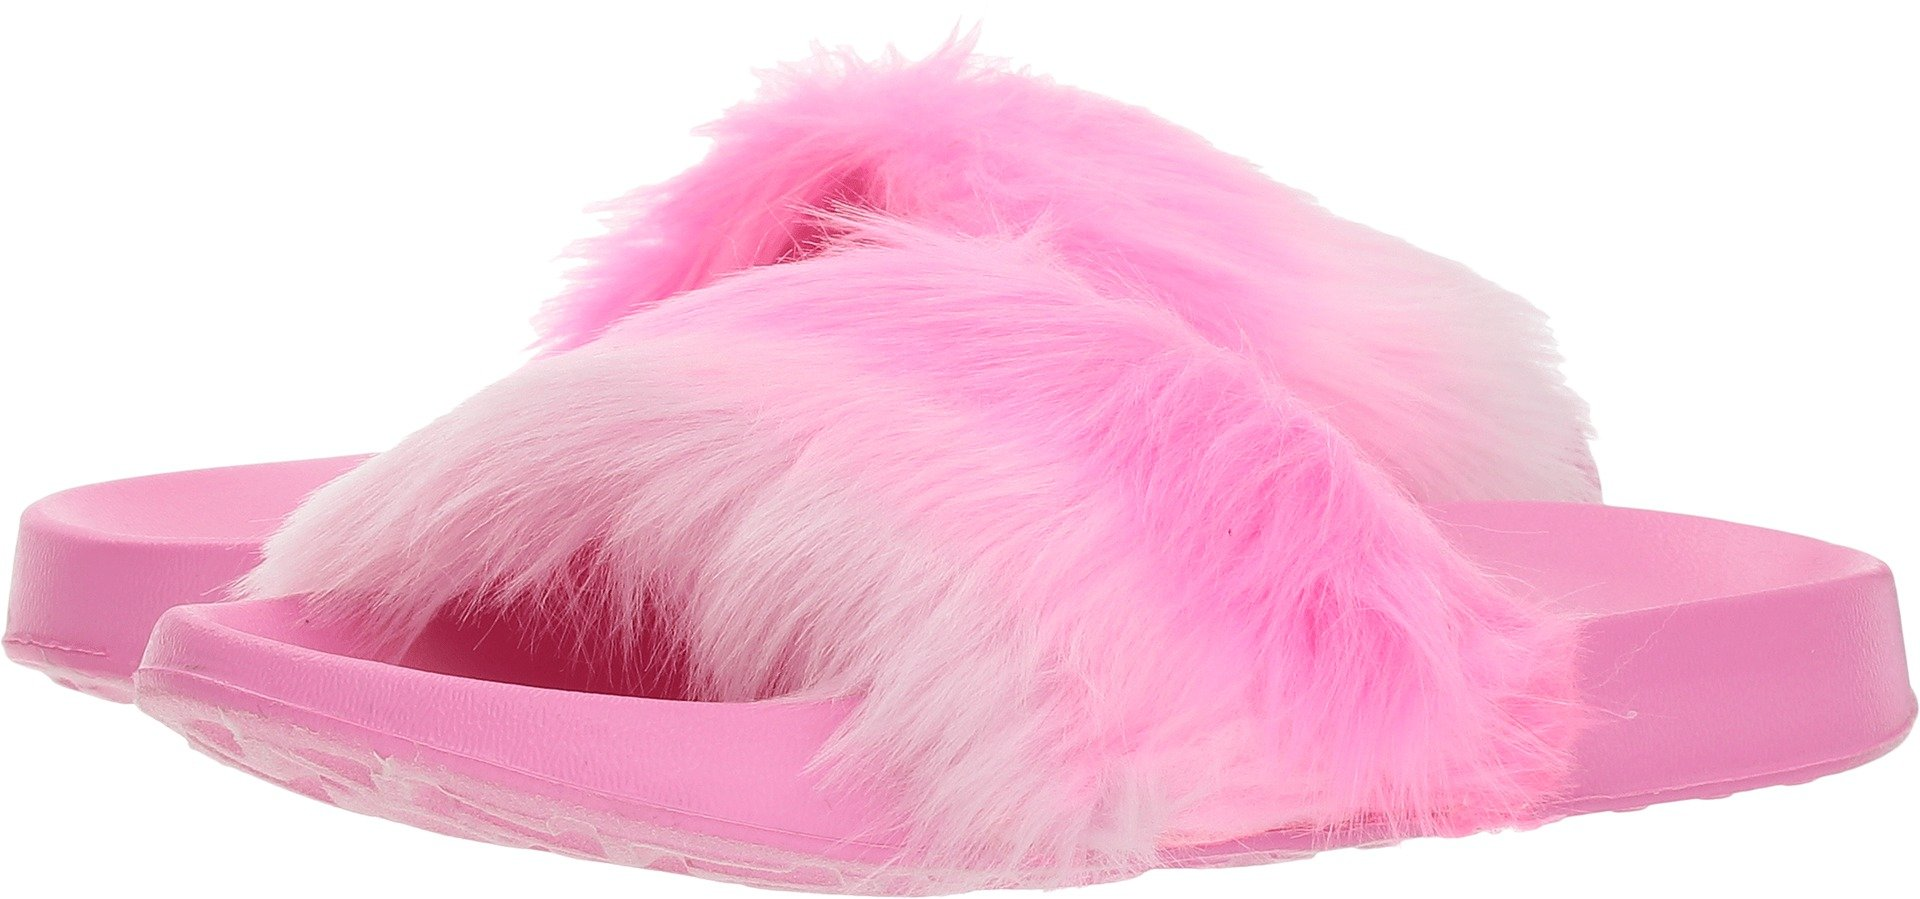 Skechers Kids Girl's Faux-Fur Sunny Slides 86921L (Little Kid/Big Kid) Hot Pink 5 M US Big Kid